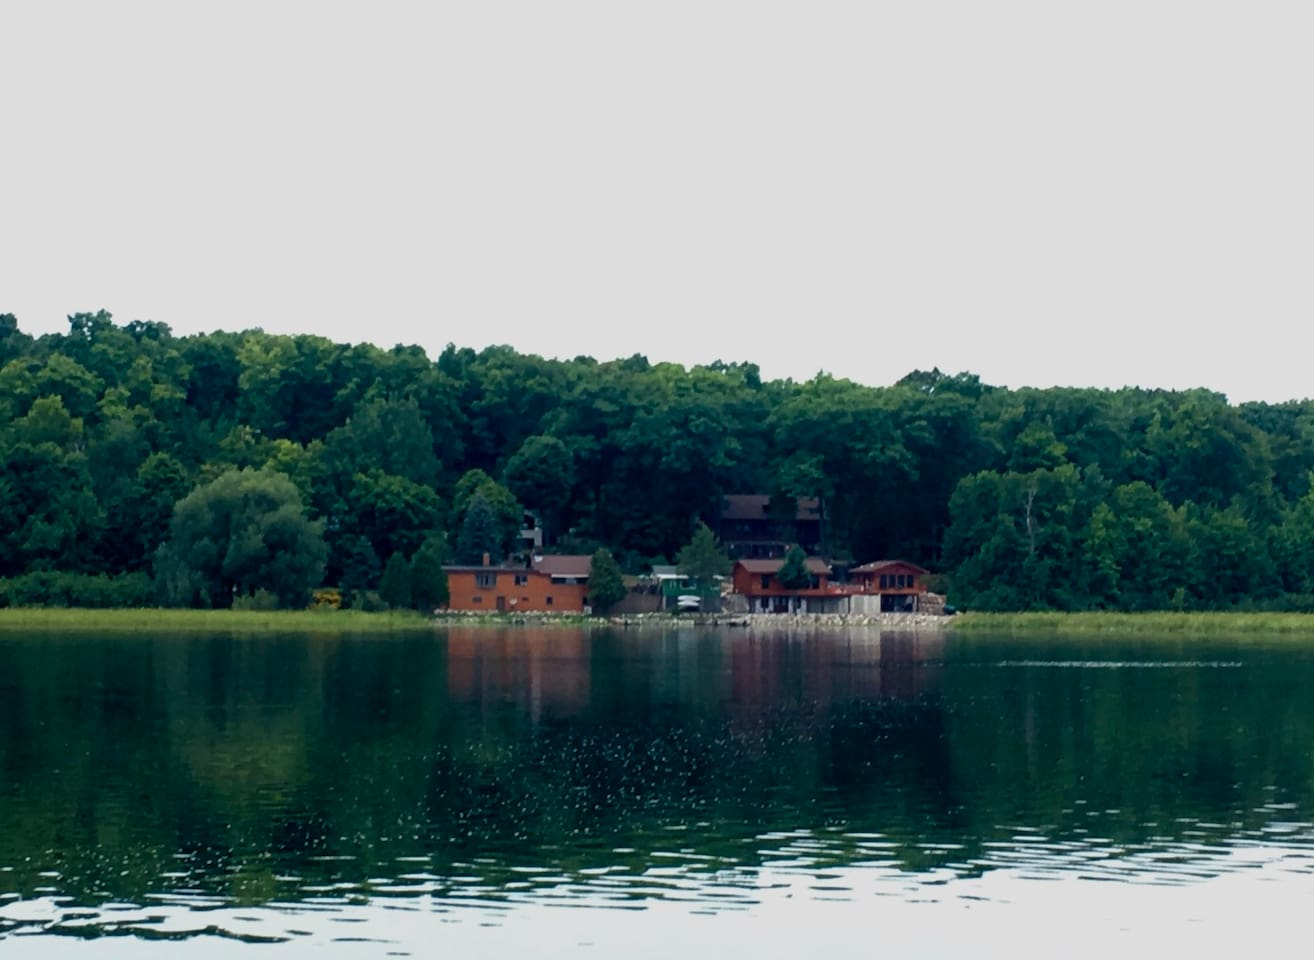 Piacenza cabins are the 2 cabins pictured on the right; Johnnie's Resort are the 2 on the left.  Surrounded by the Nicolet National Forest.  This is the ONLY development on 500-acre Wabikon Lake that leads to 250-acre Riley Lake then on to Indian Springs.  All of these waterways are federally and state protected!  Its rare to find a Wisconsin lake like this.  Fish and boat to your delight and leisurely relax attempting to unplug.